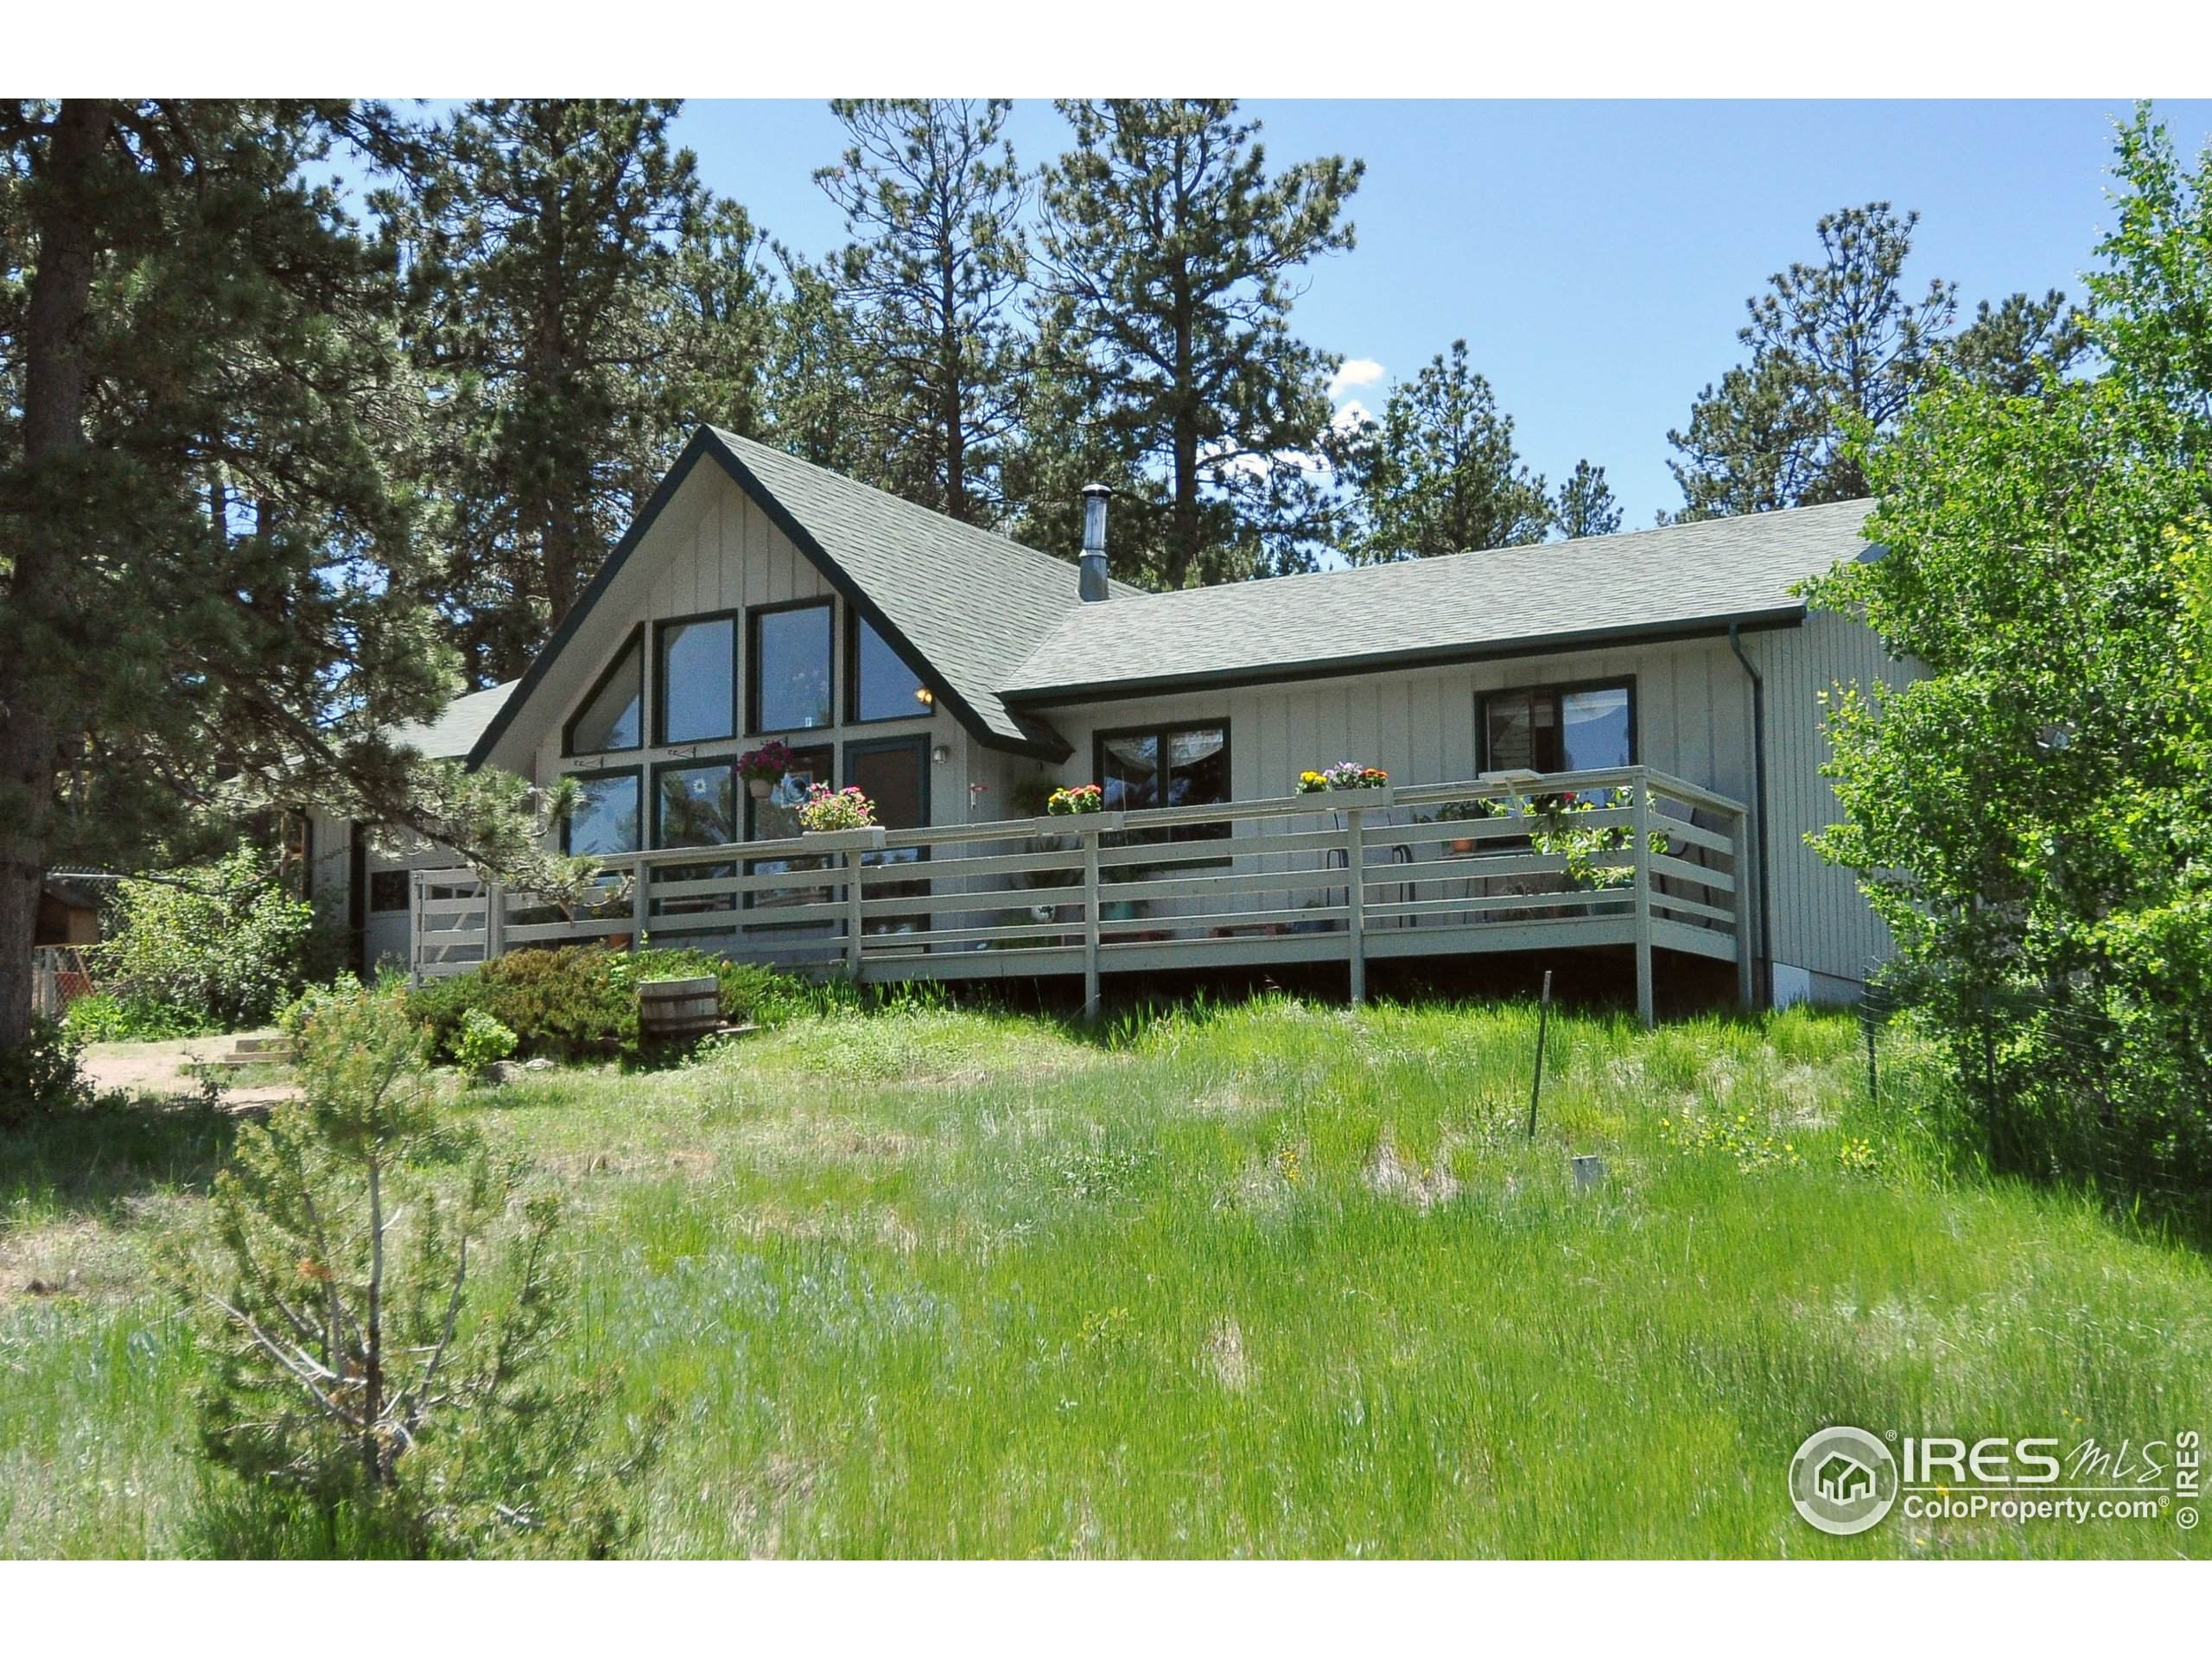 4588 Shore View Ct, Longmont, CO 80504 (MLS #933147) :: J2 Real Estate Group at Remax Alliance